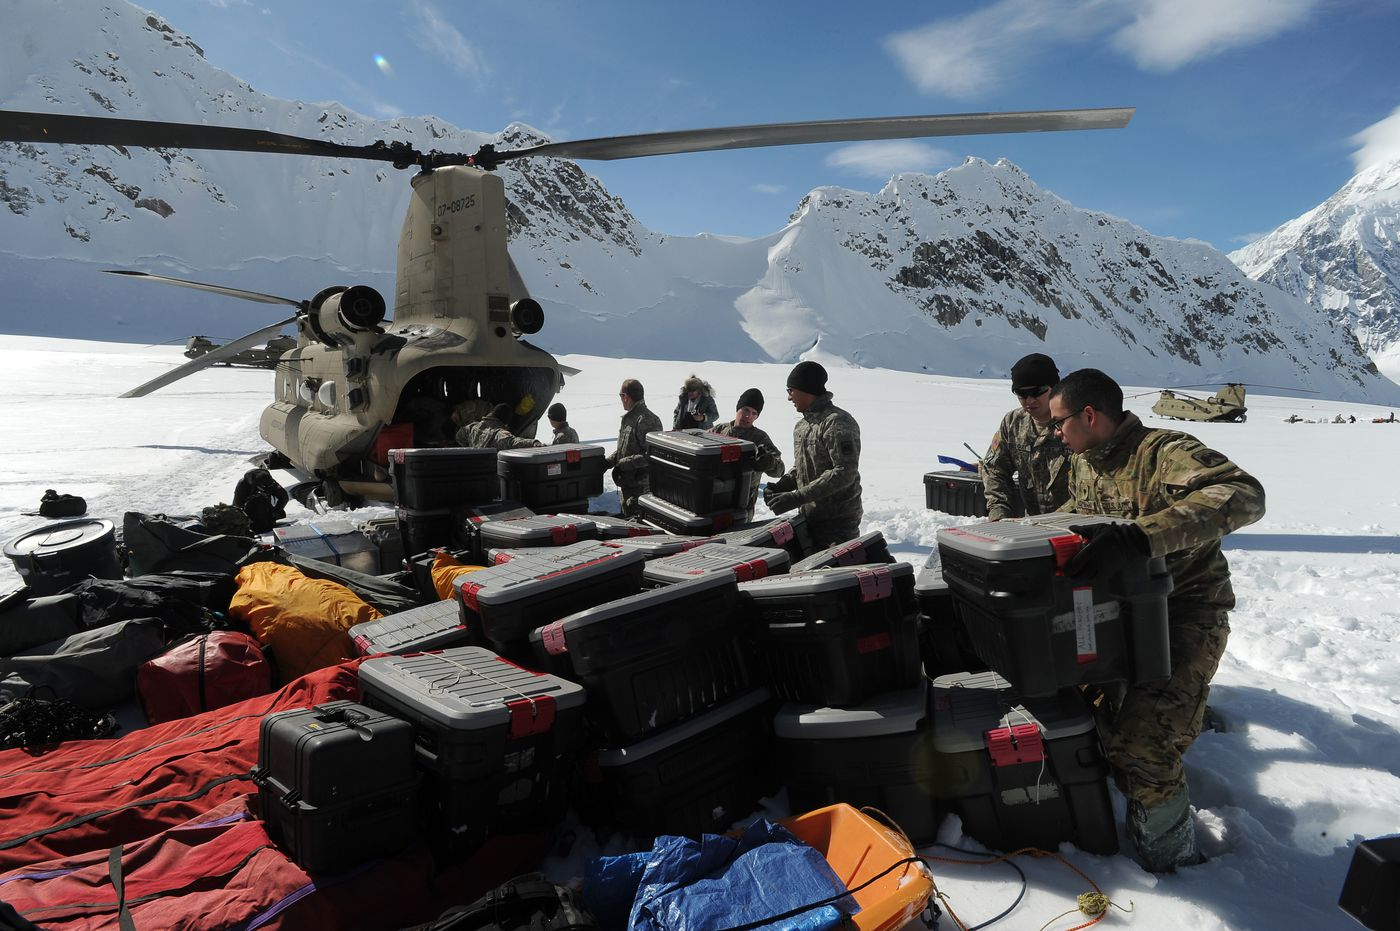 Fort Wainwright soldiers unload supplies from one of two Chinook helicopters landing at the National Park Service Denali mountaineering camp on the Kahiltna Glacier on Sunday.